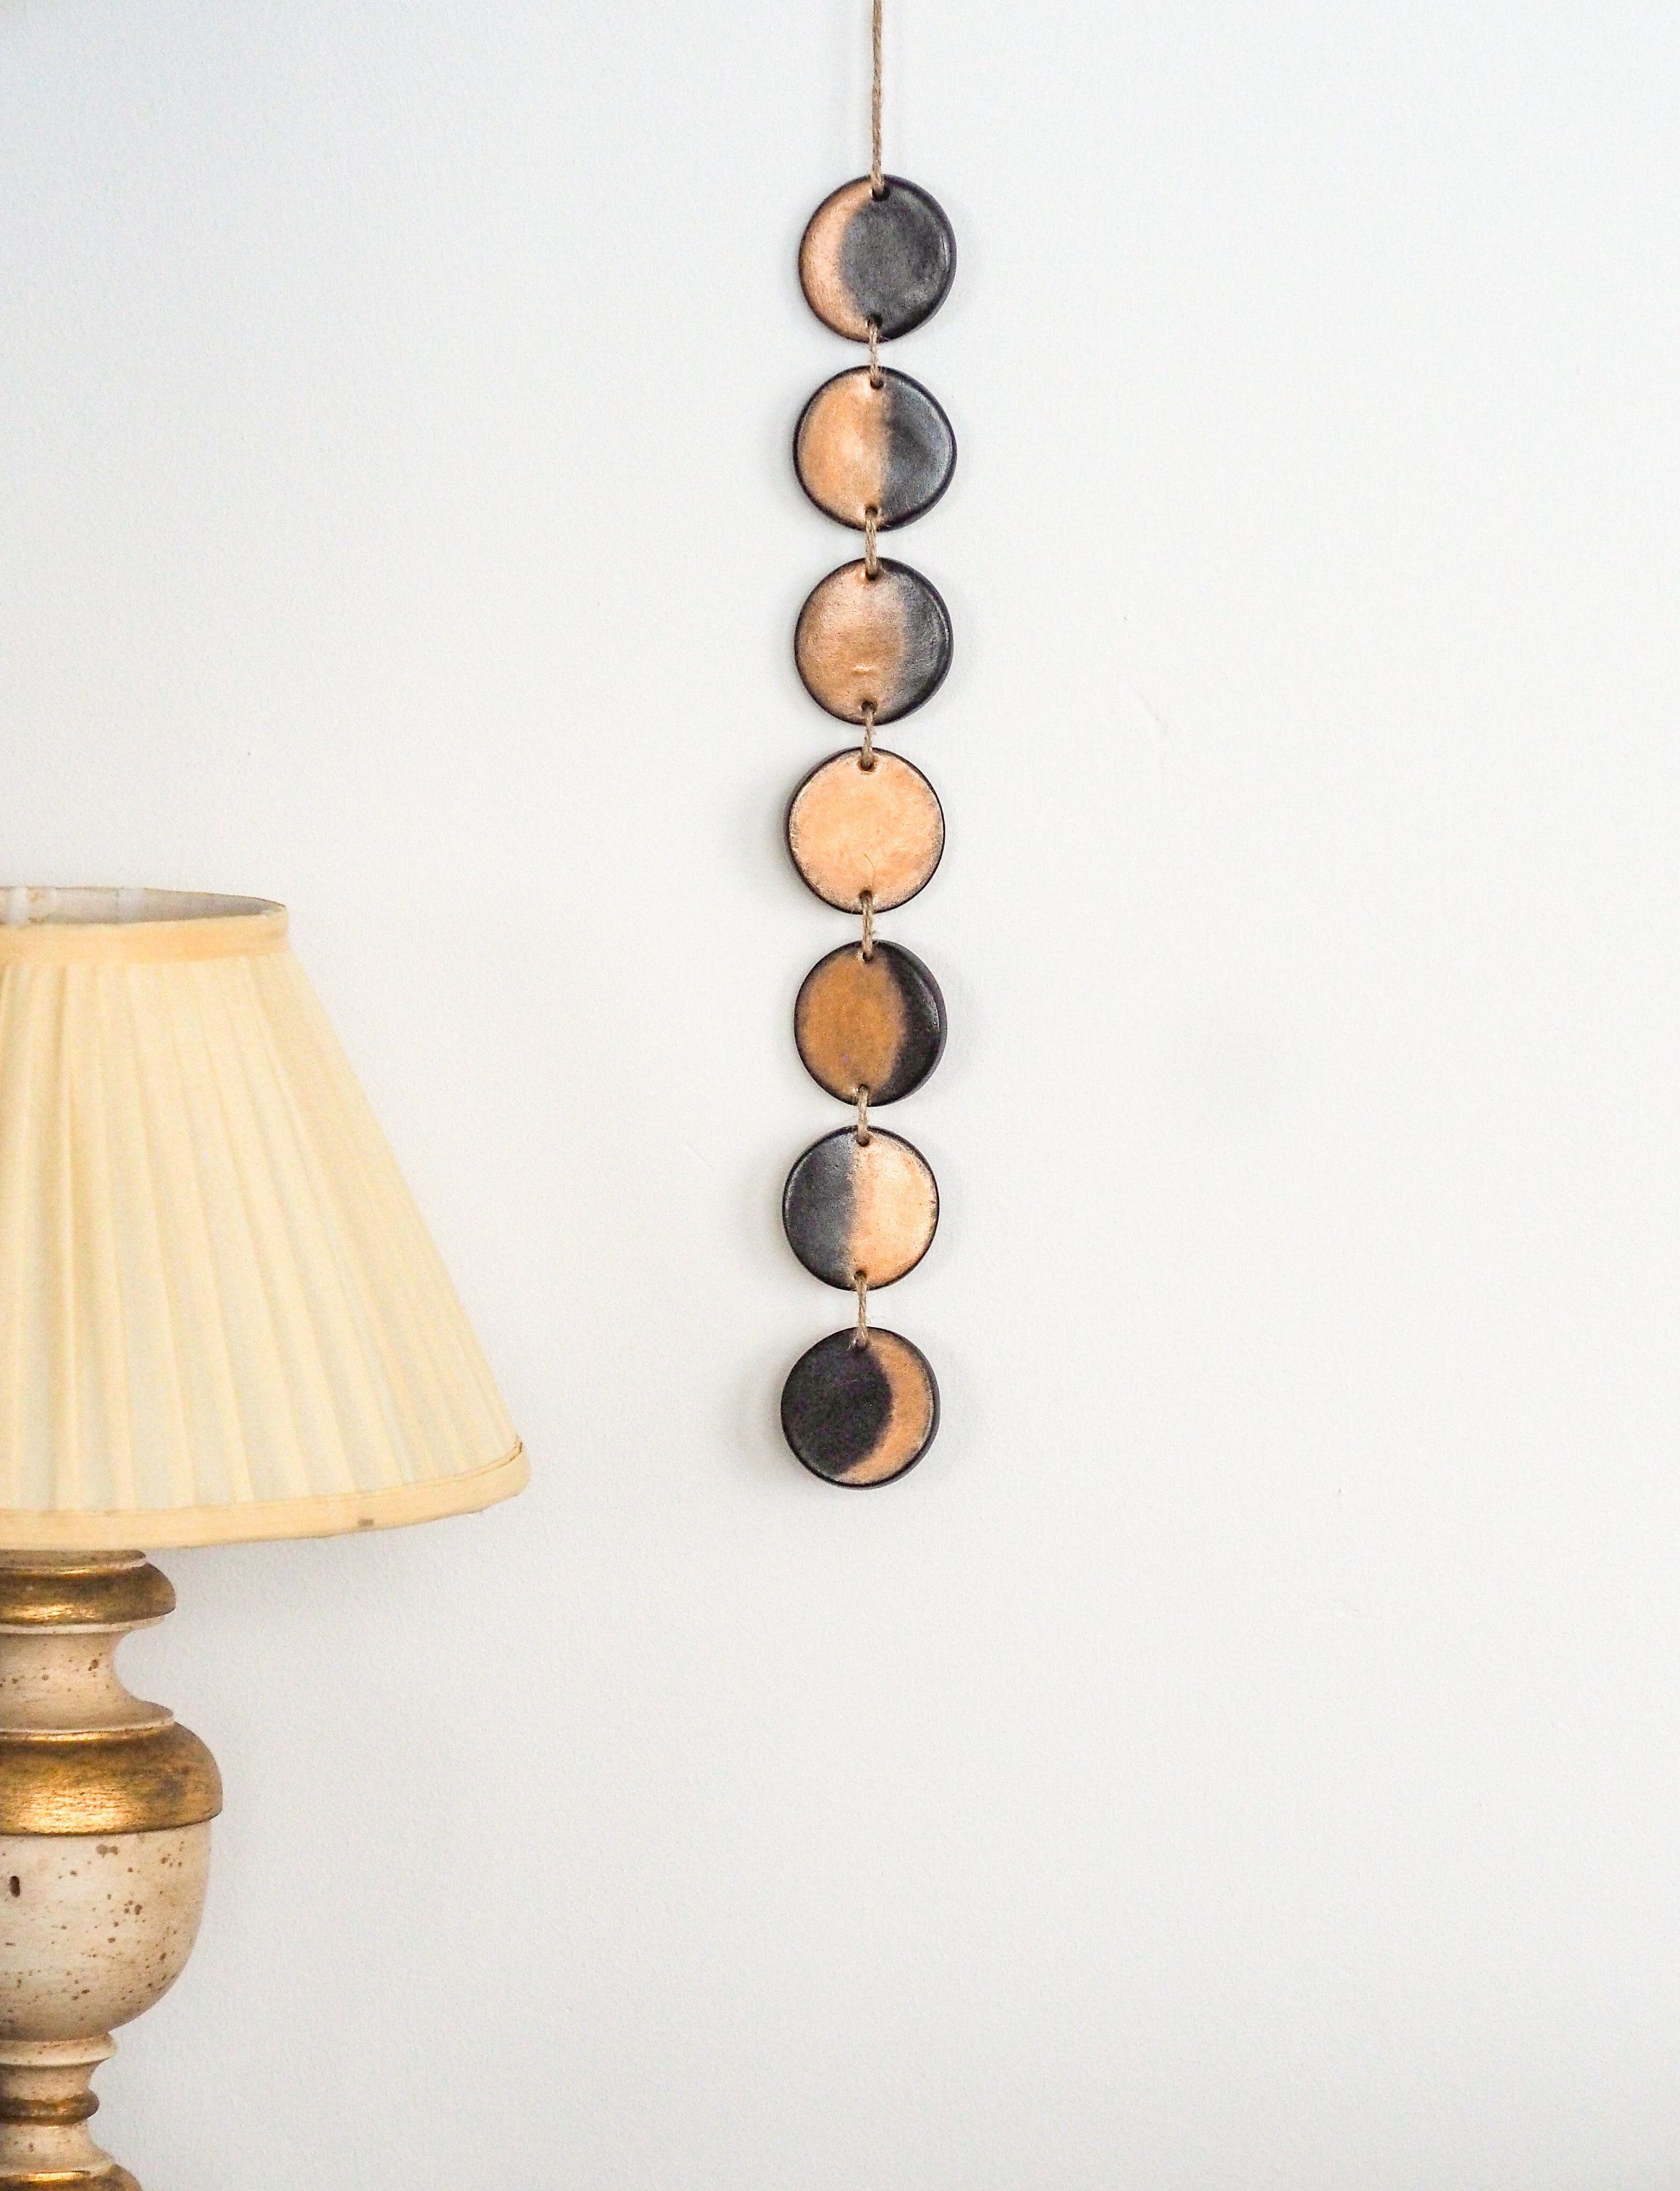 Moon phase art Moon phase wall hanging Celestial wall